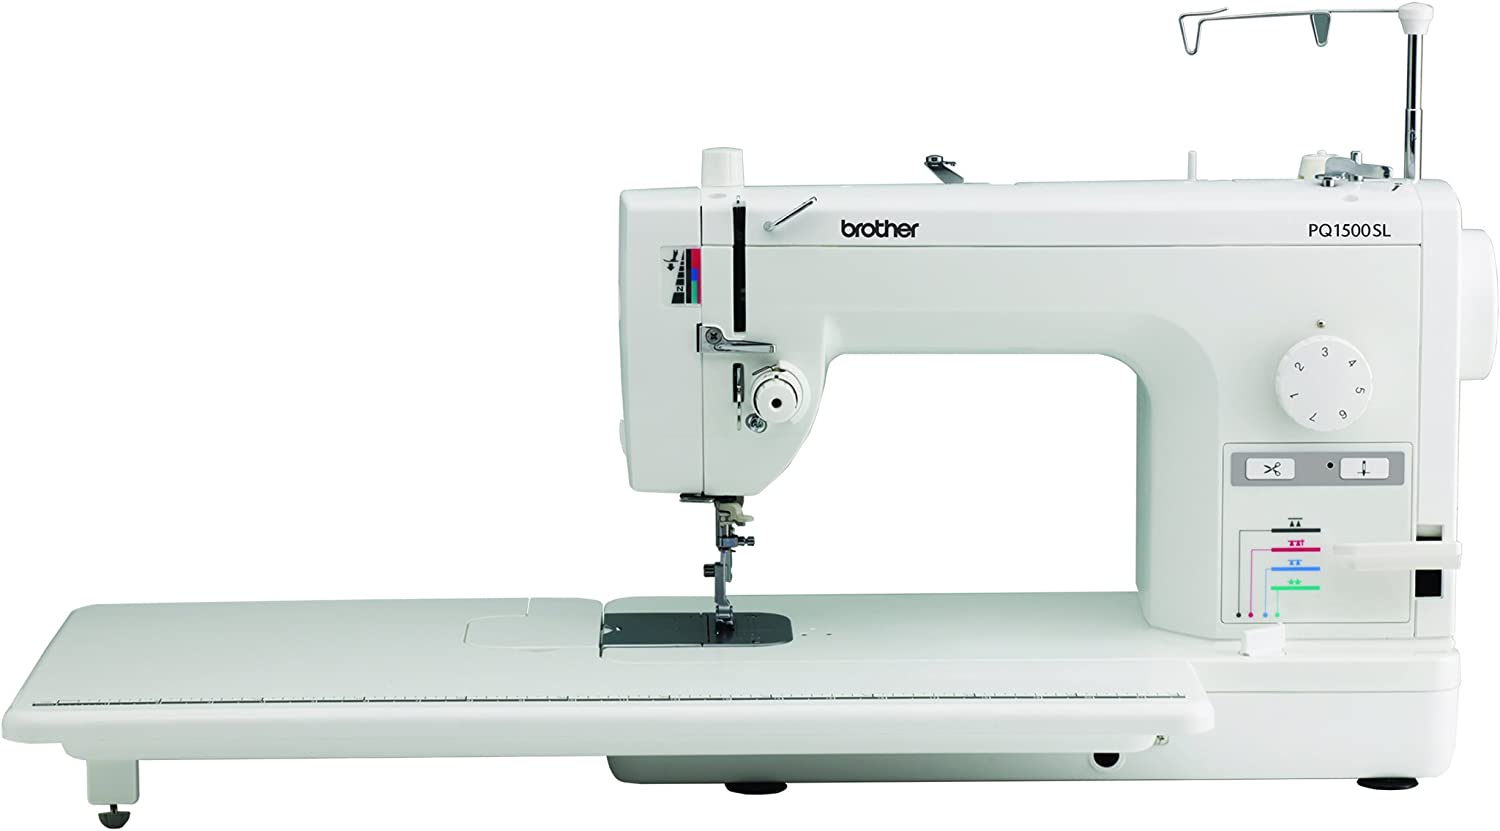 Top 8 Best Sewing Machine For Quilting Reviews in 2020 8